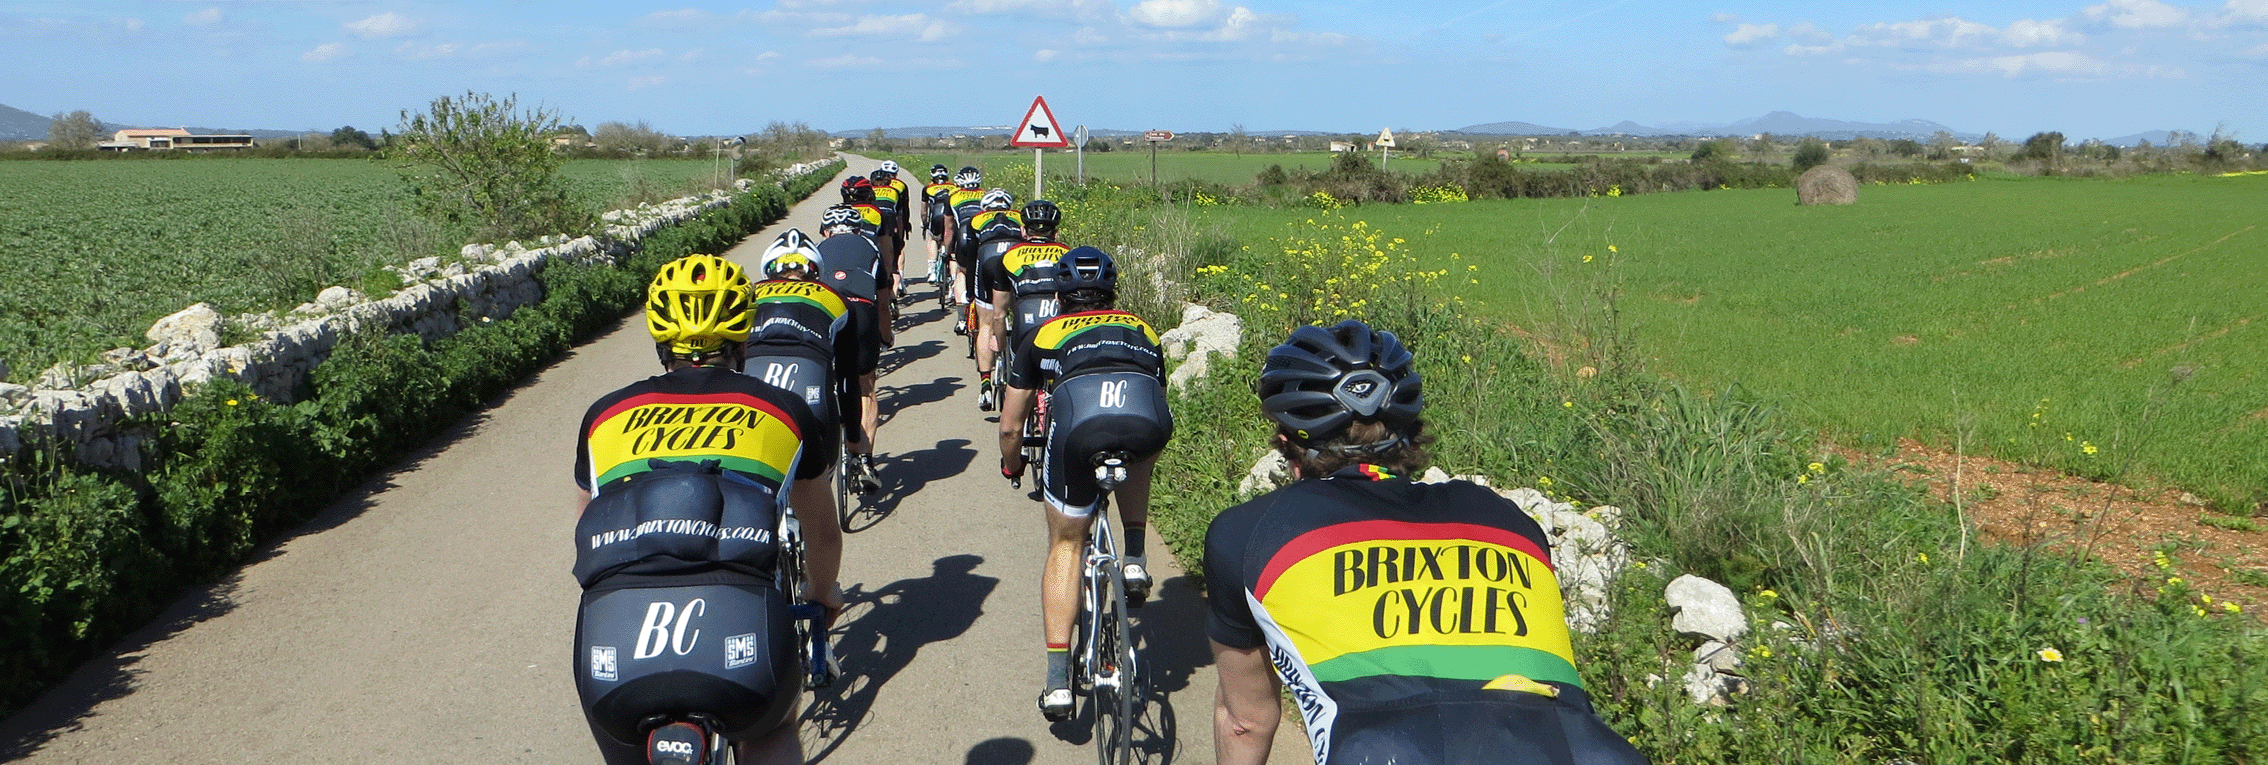 Ciclosol - Mallorca Cycle Camps 8